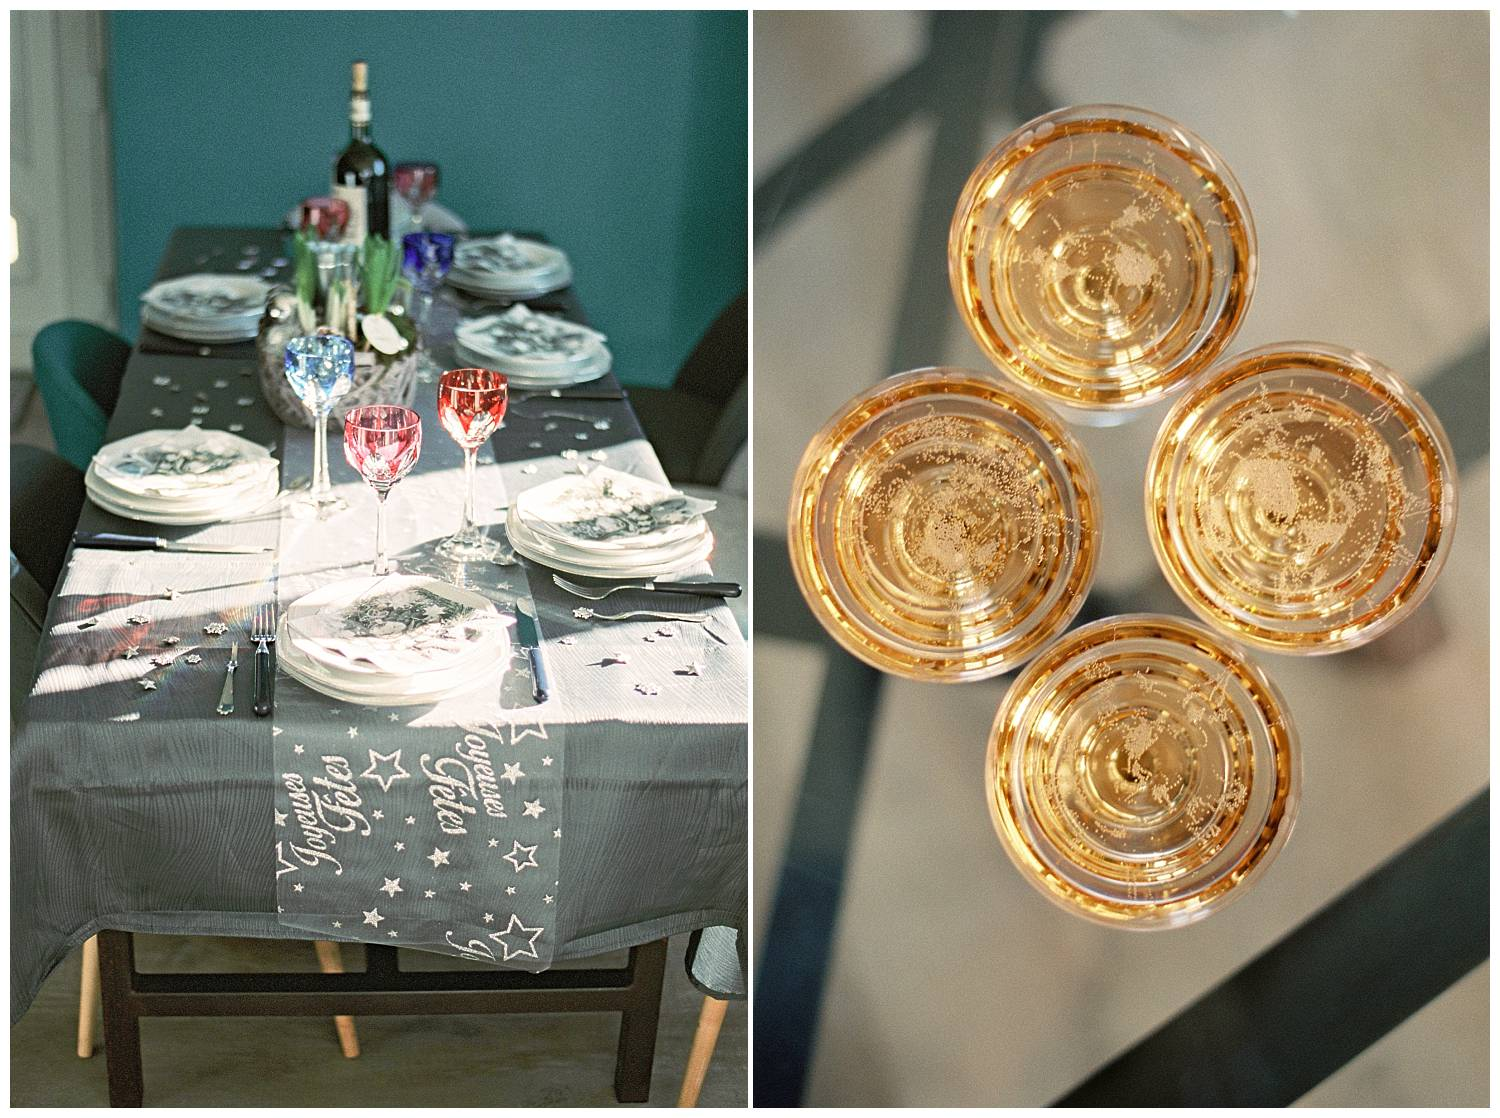 Christmas table inspiration and some glasses of Champagne